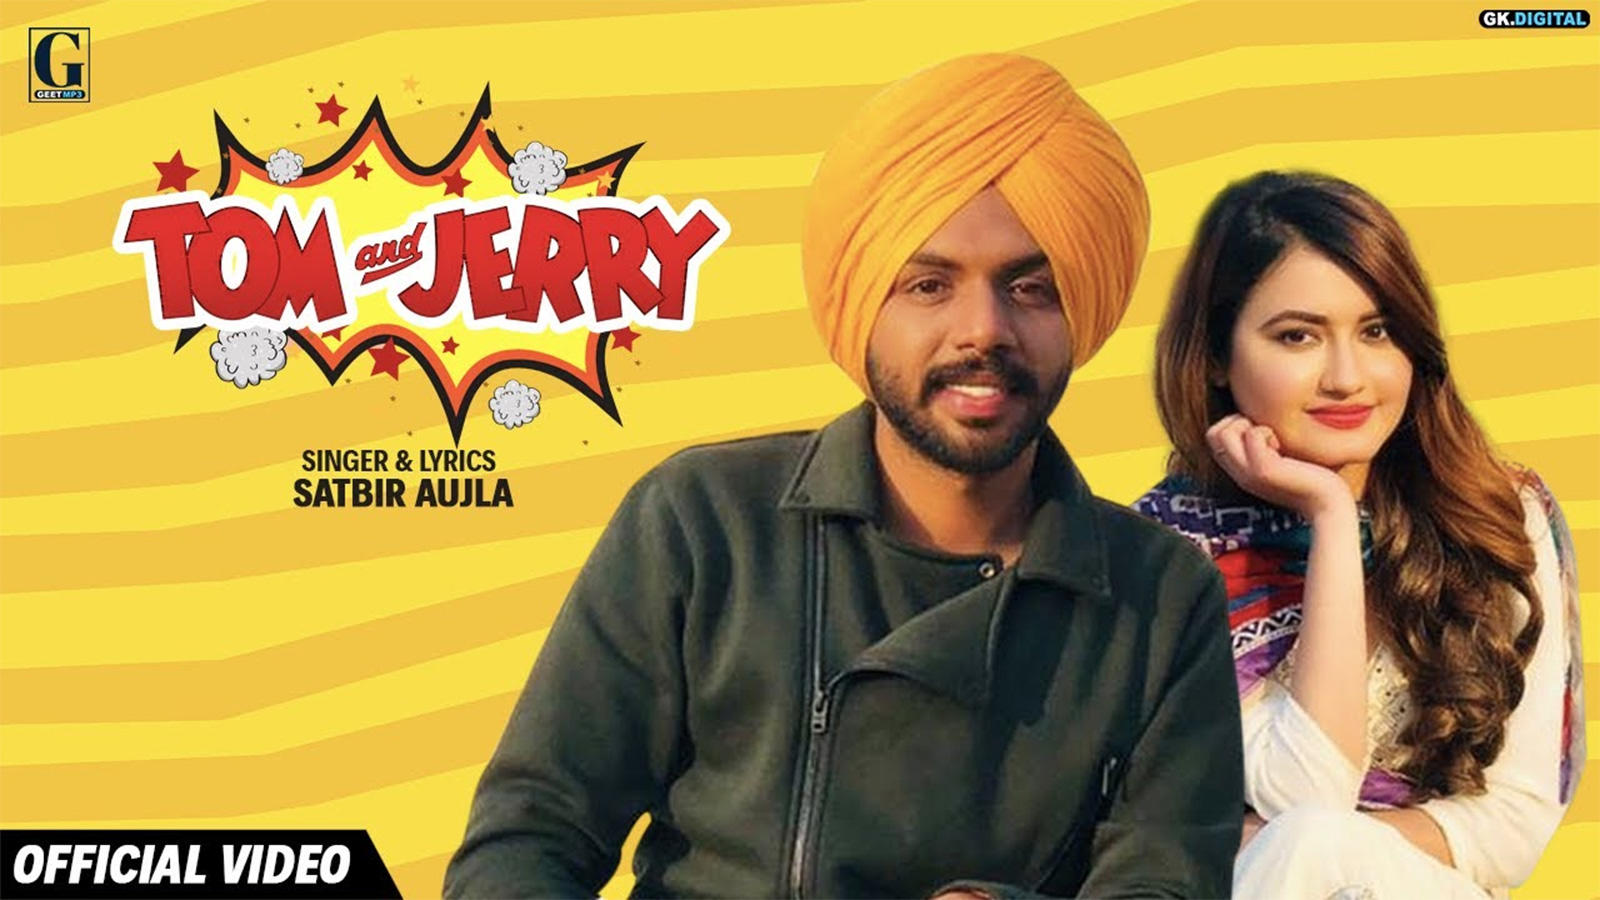 Latest Punjabi Song Tom And Jerry Sung By Satbir Aujla | Punjabi Video Songs  - Times of India